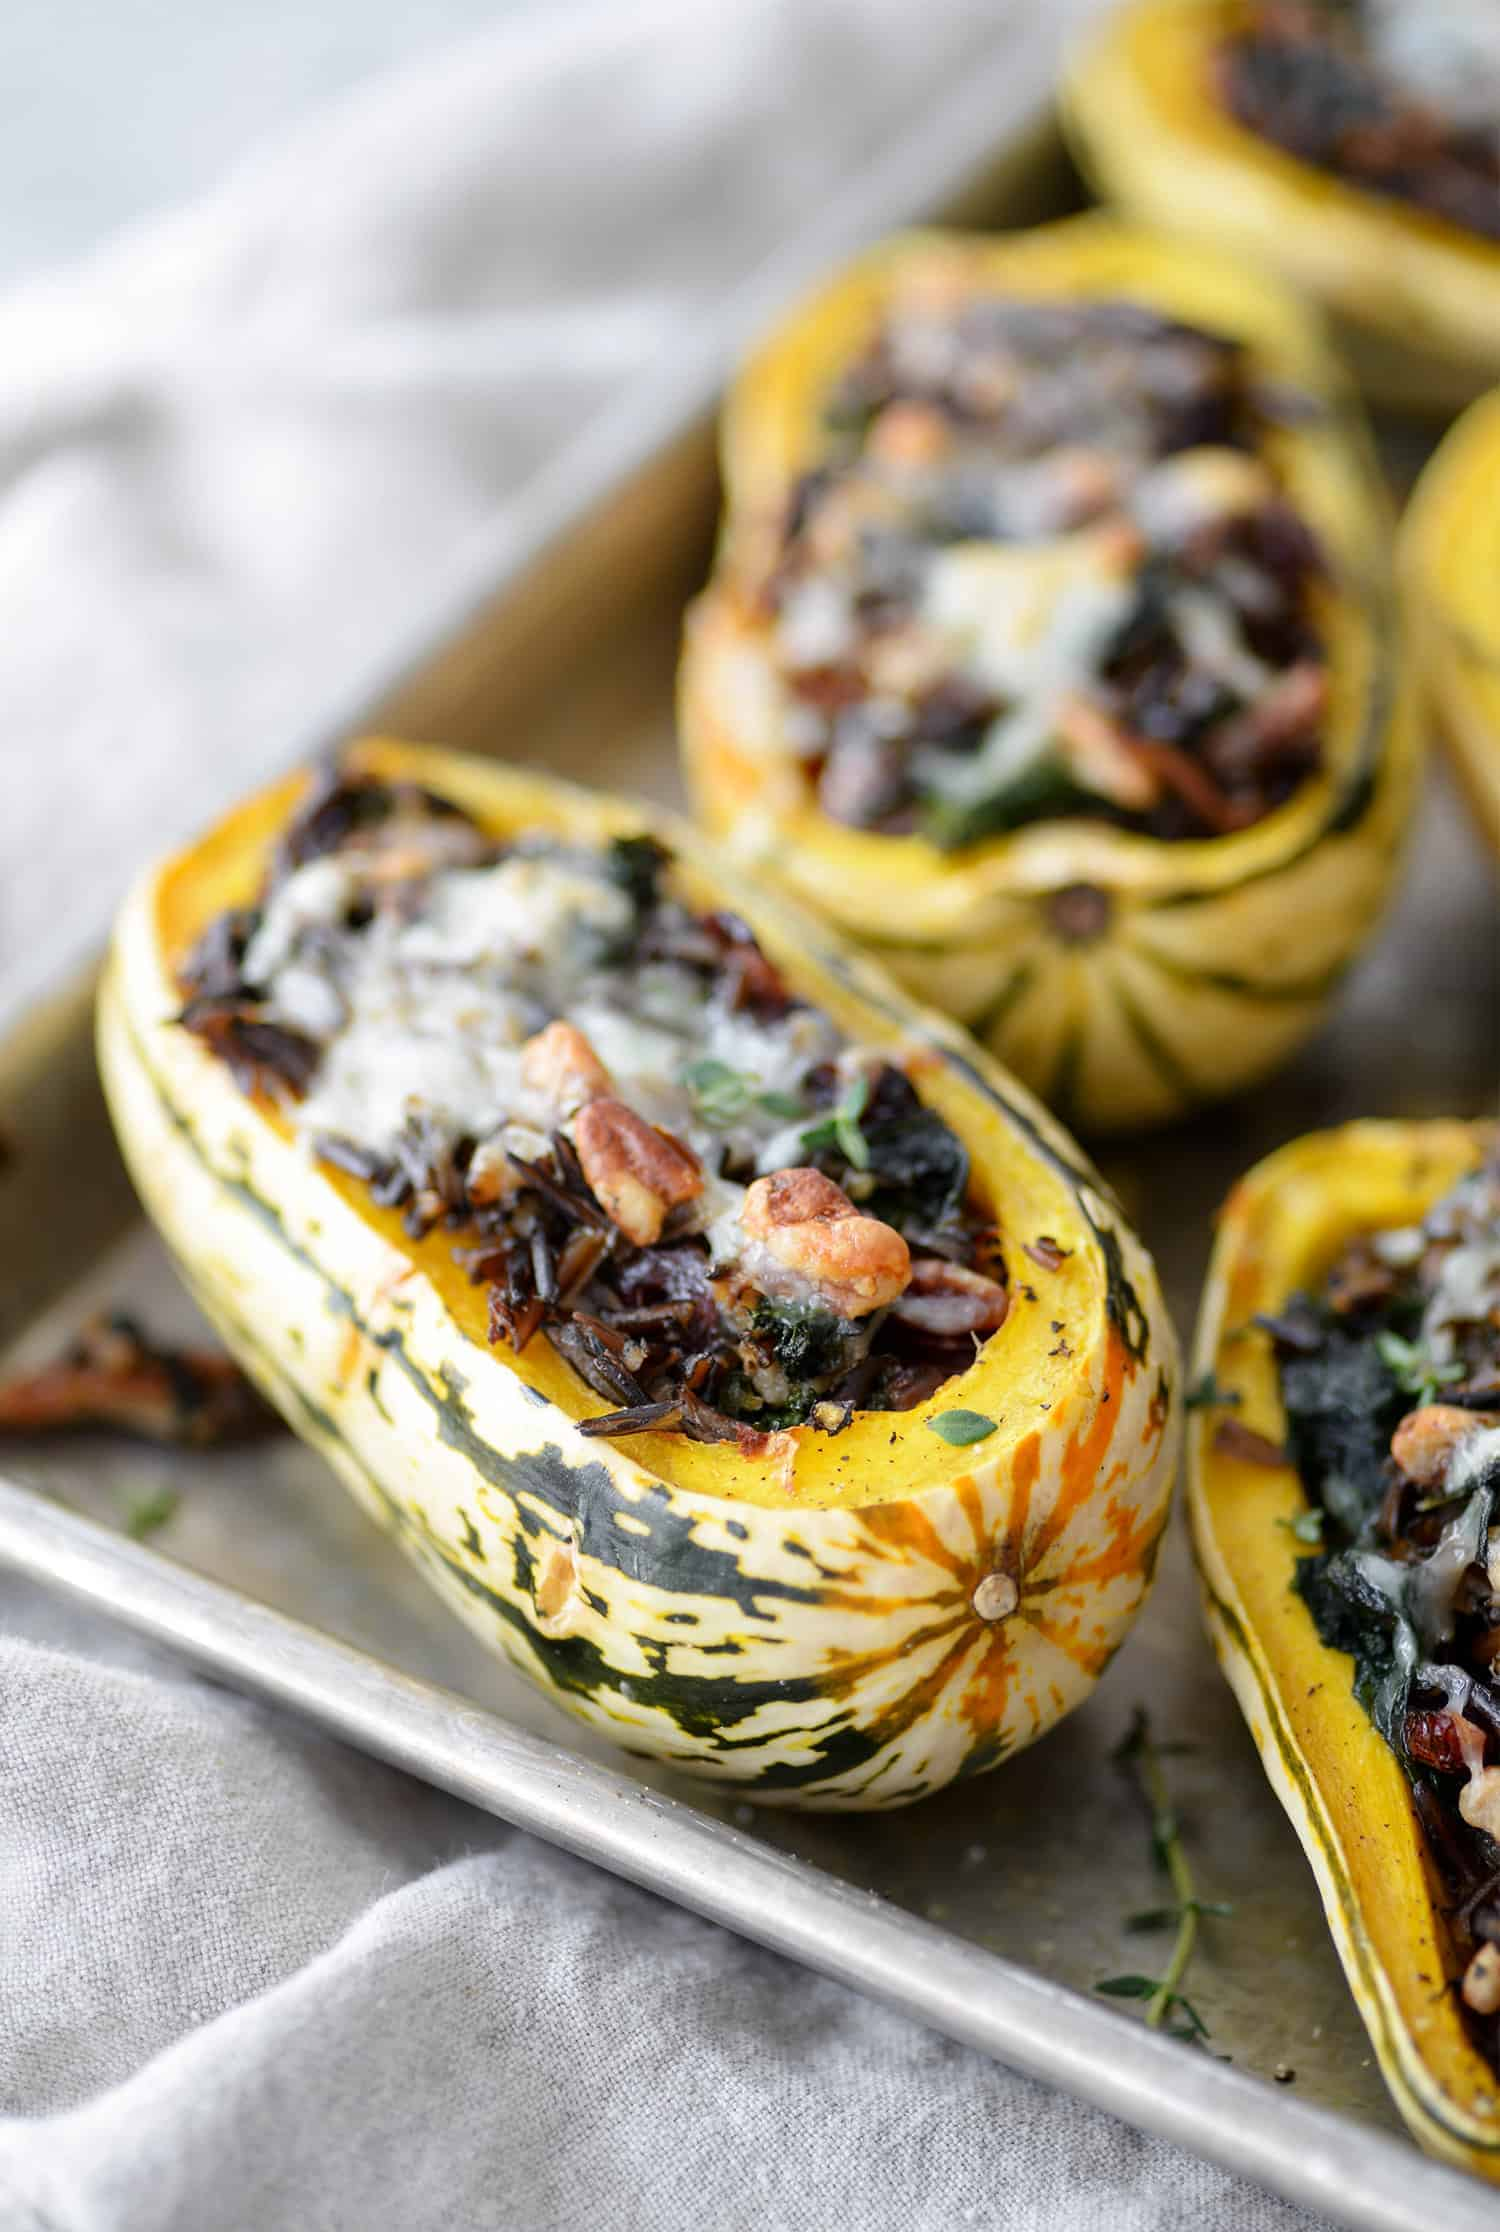 Wild Rice, Kale and Cranberry Stuffed Delicata Squash. The perfect vegetarian main dish. Roasted Squash stuffed with wild rice, kale, pecans, cranberries and topped with cheese. Gluten-free | www.delishknowledge.com